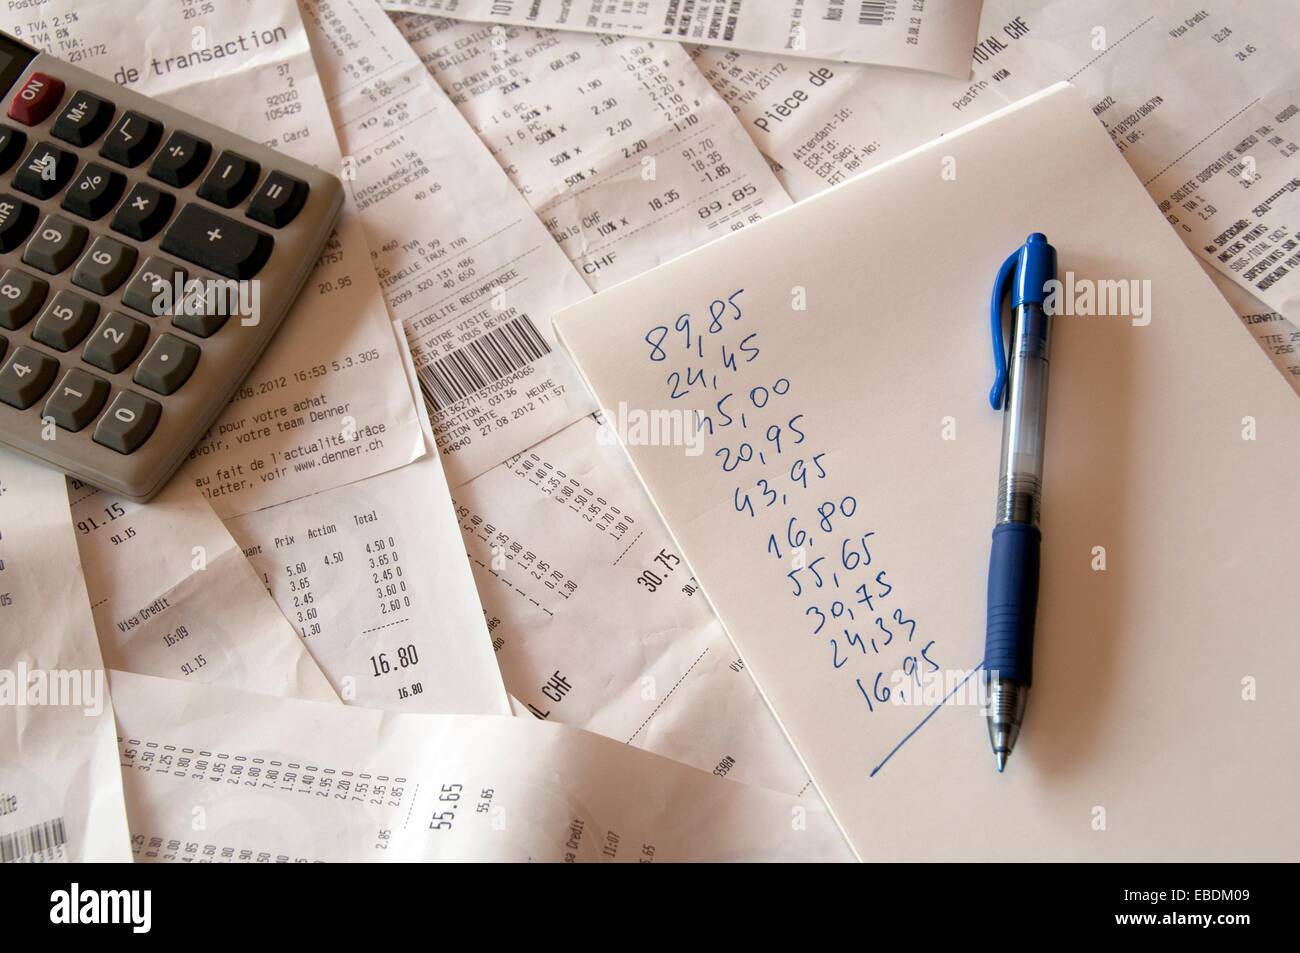 summary of household expenses by collected receipts from supermarkets Stock Photo